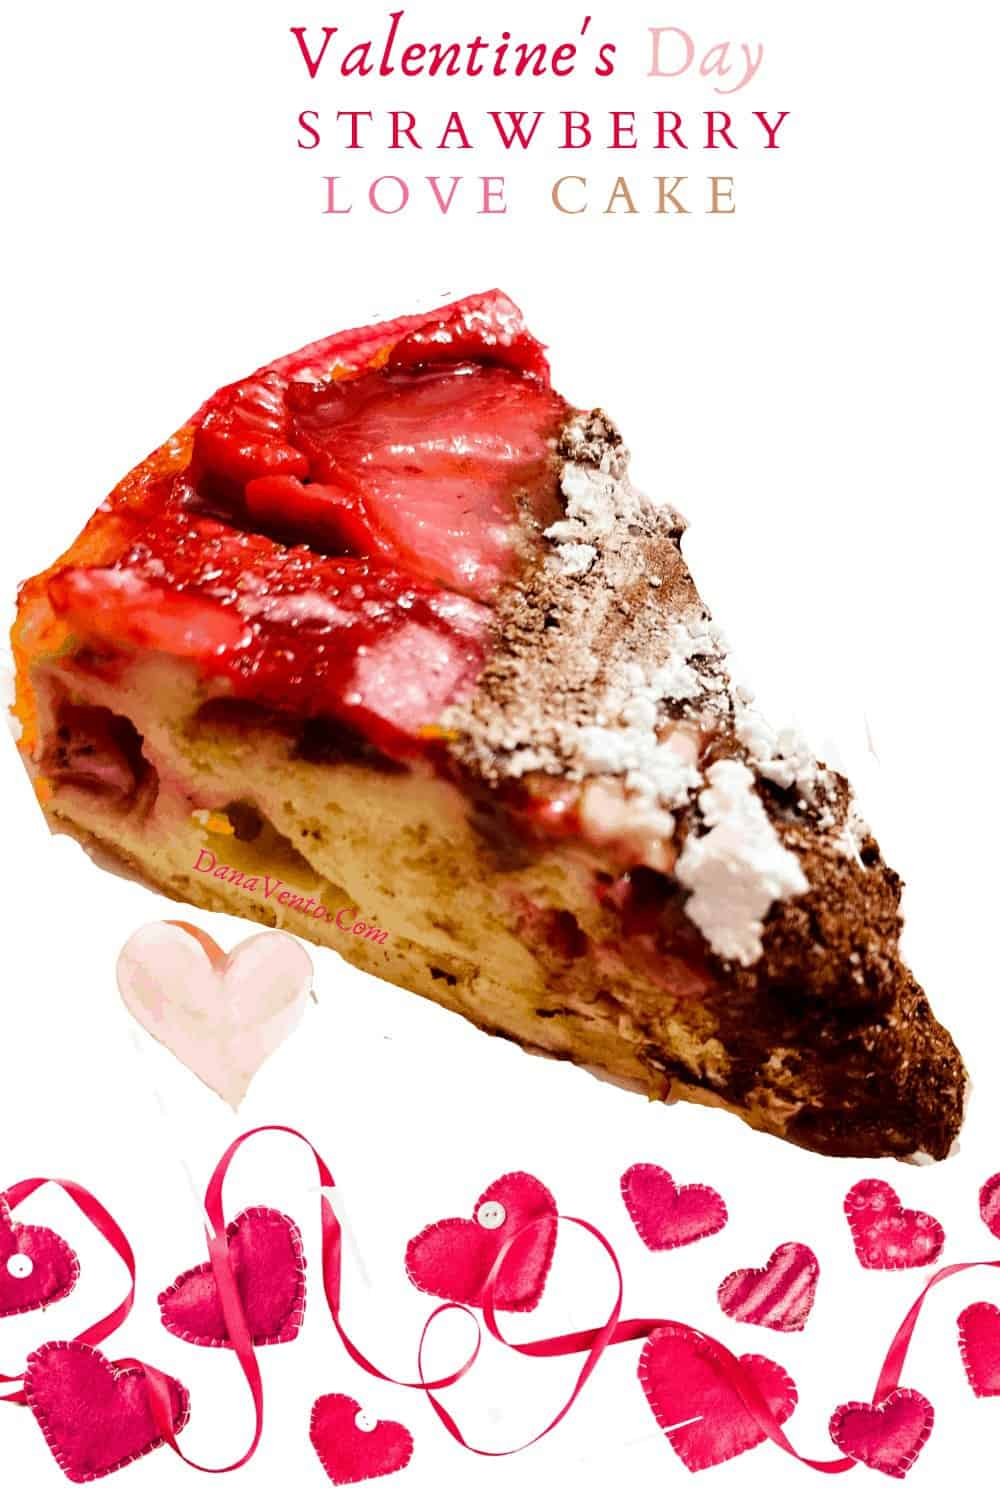 IMAGE OF STRAWBERRY HEART CAKE